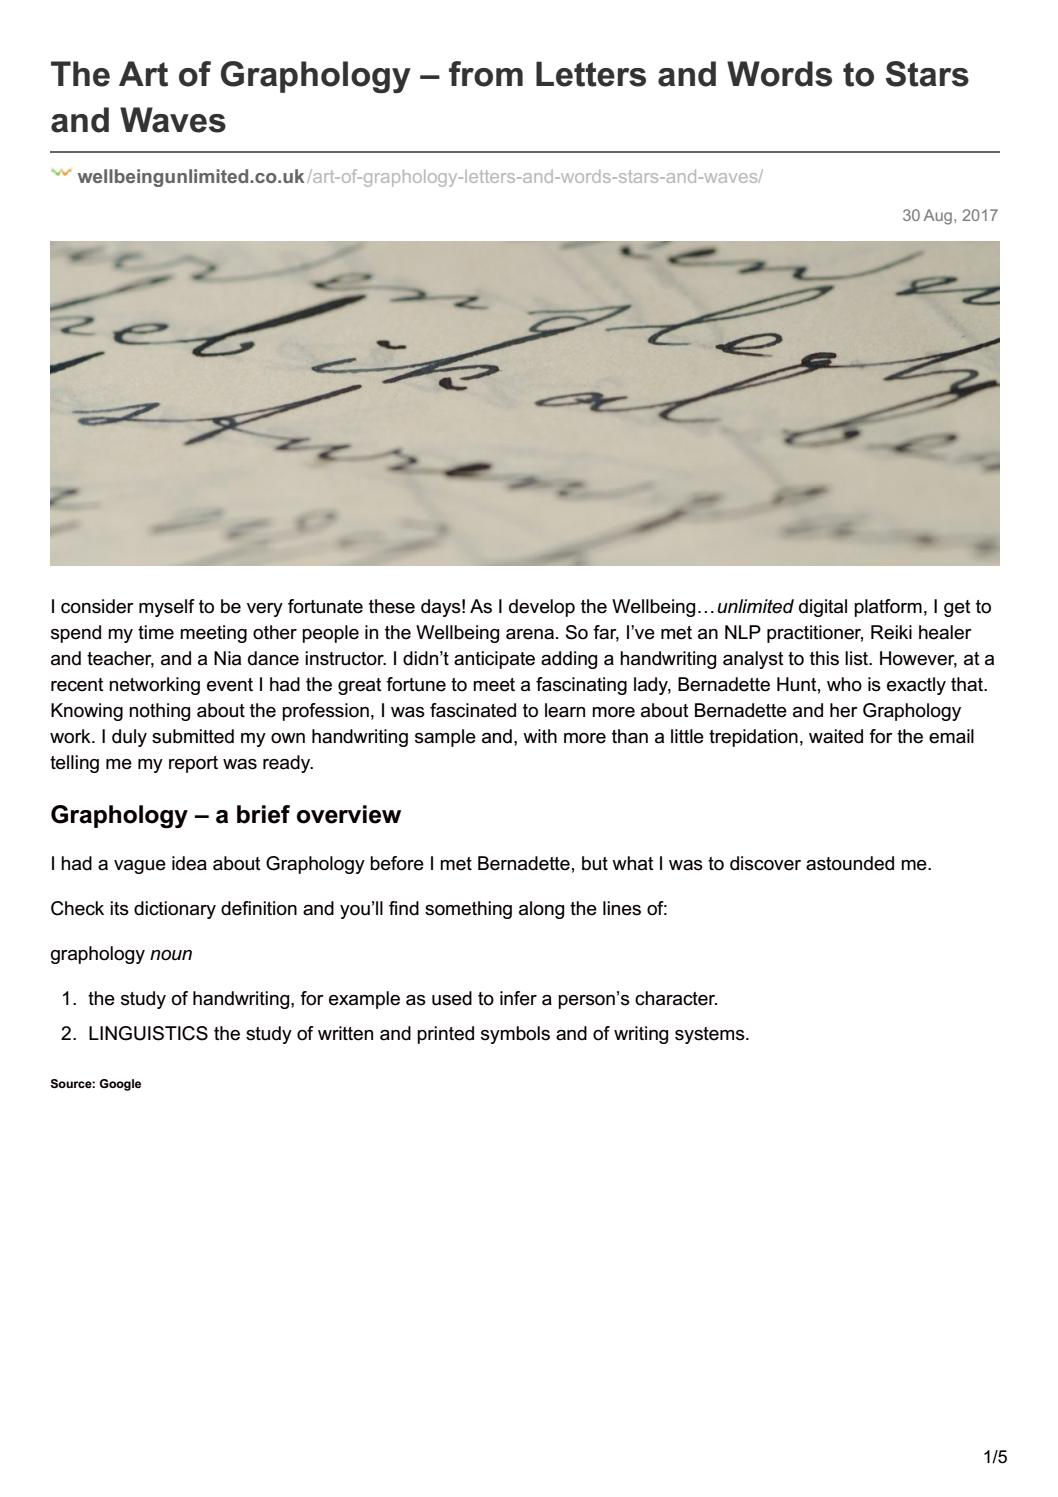 The Art Of Graphology From Letters And Words To Stars And Waves By